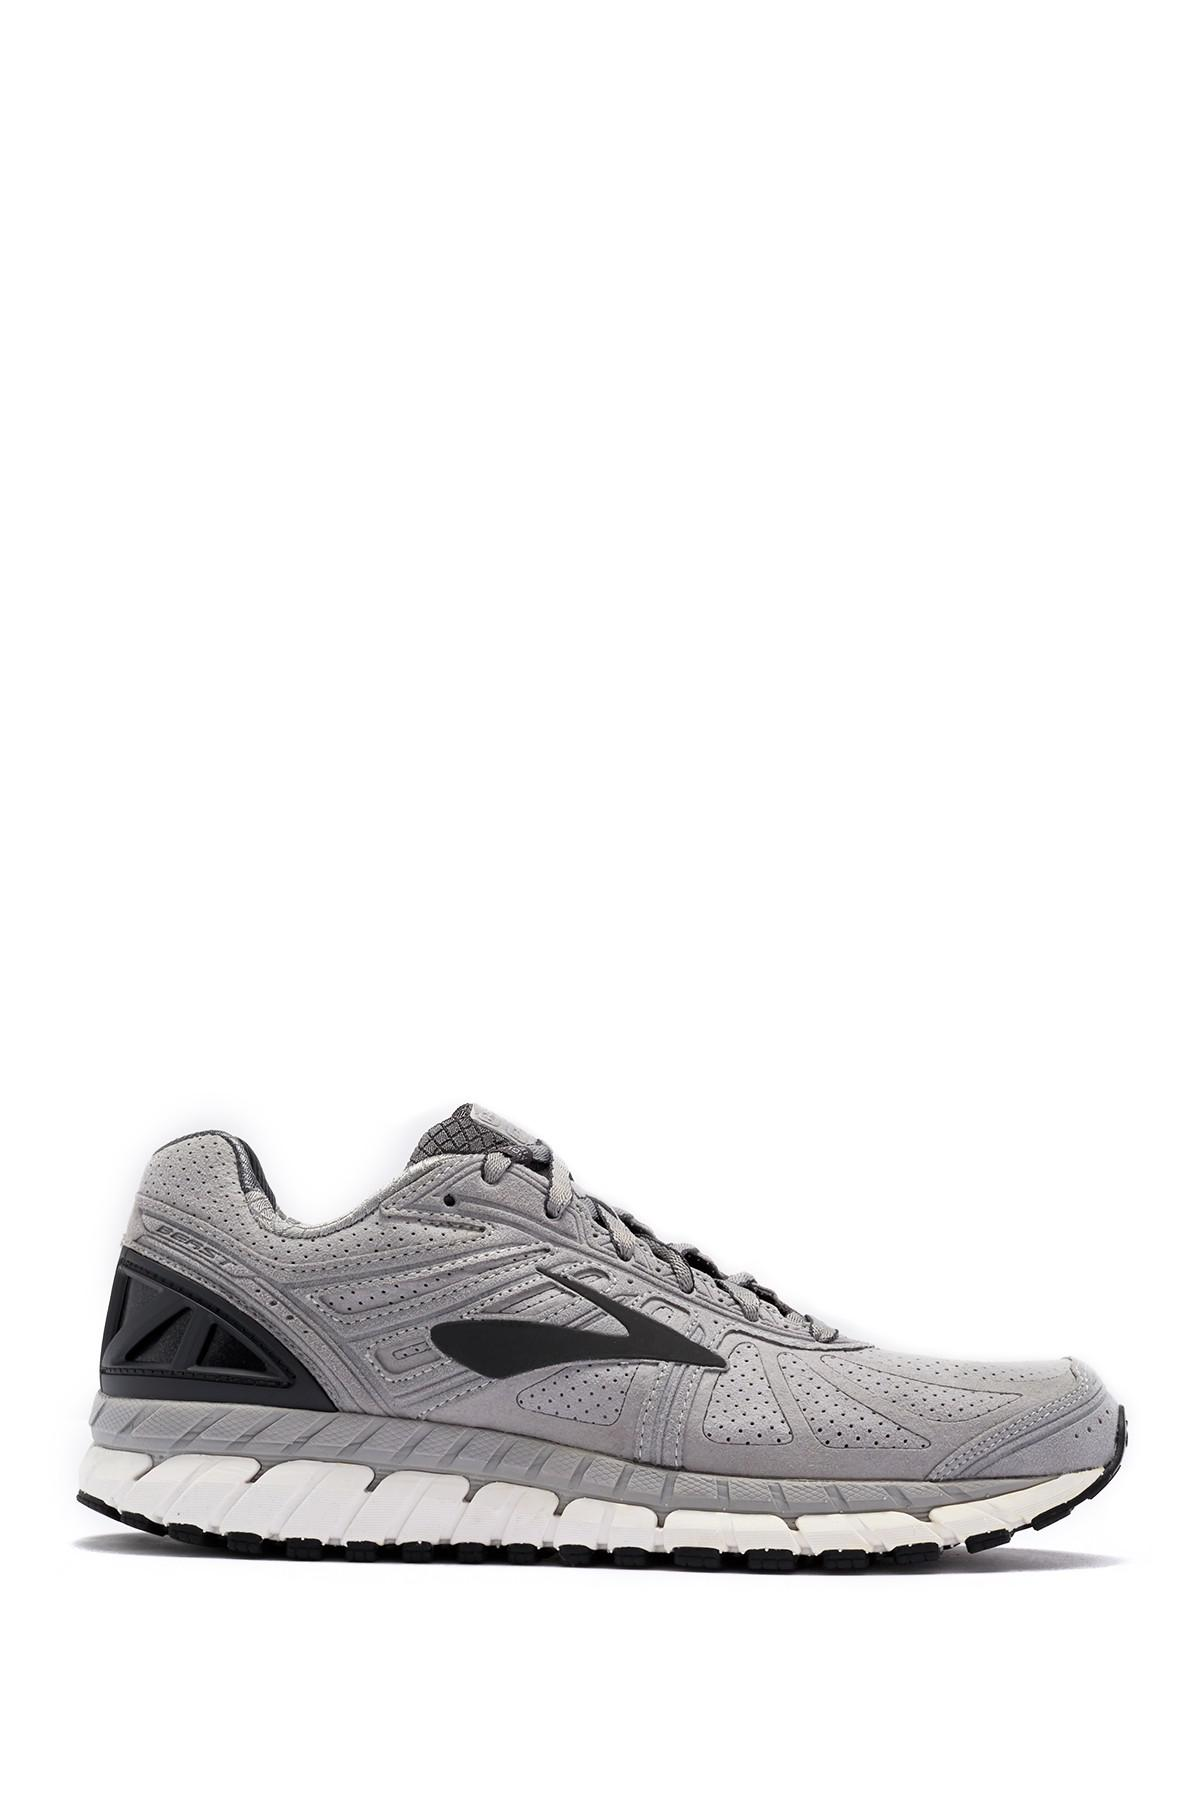 491d23063f7 Gallery. Previously sold at  Nordstrom Rack · Men s Running Sneakers ...